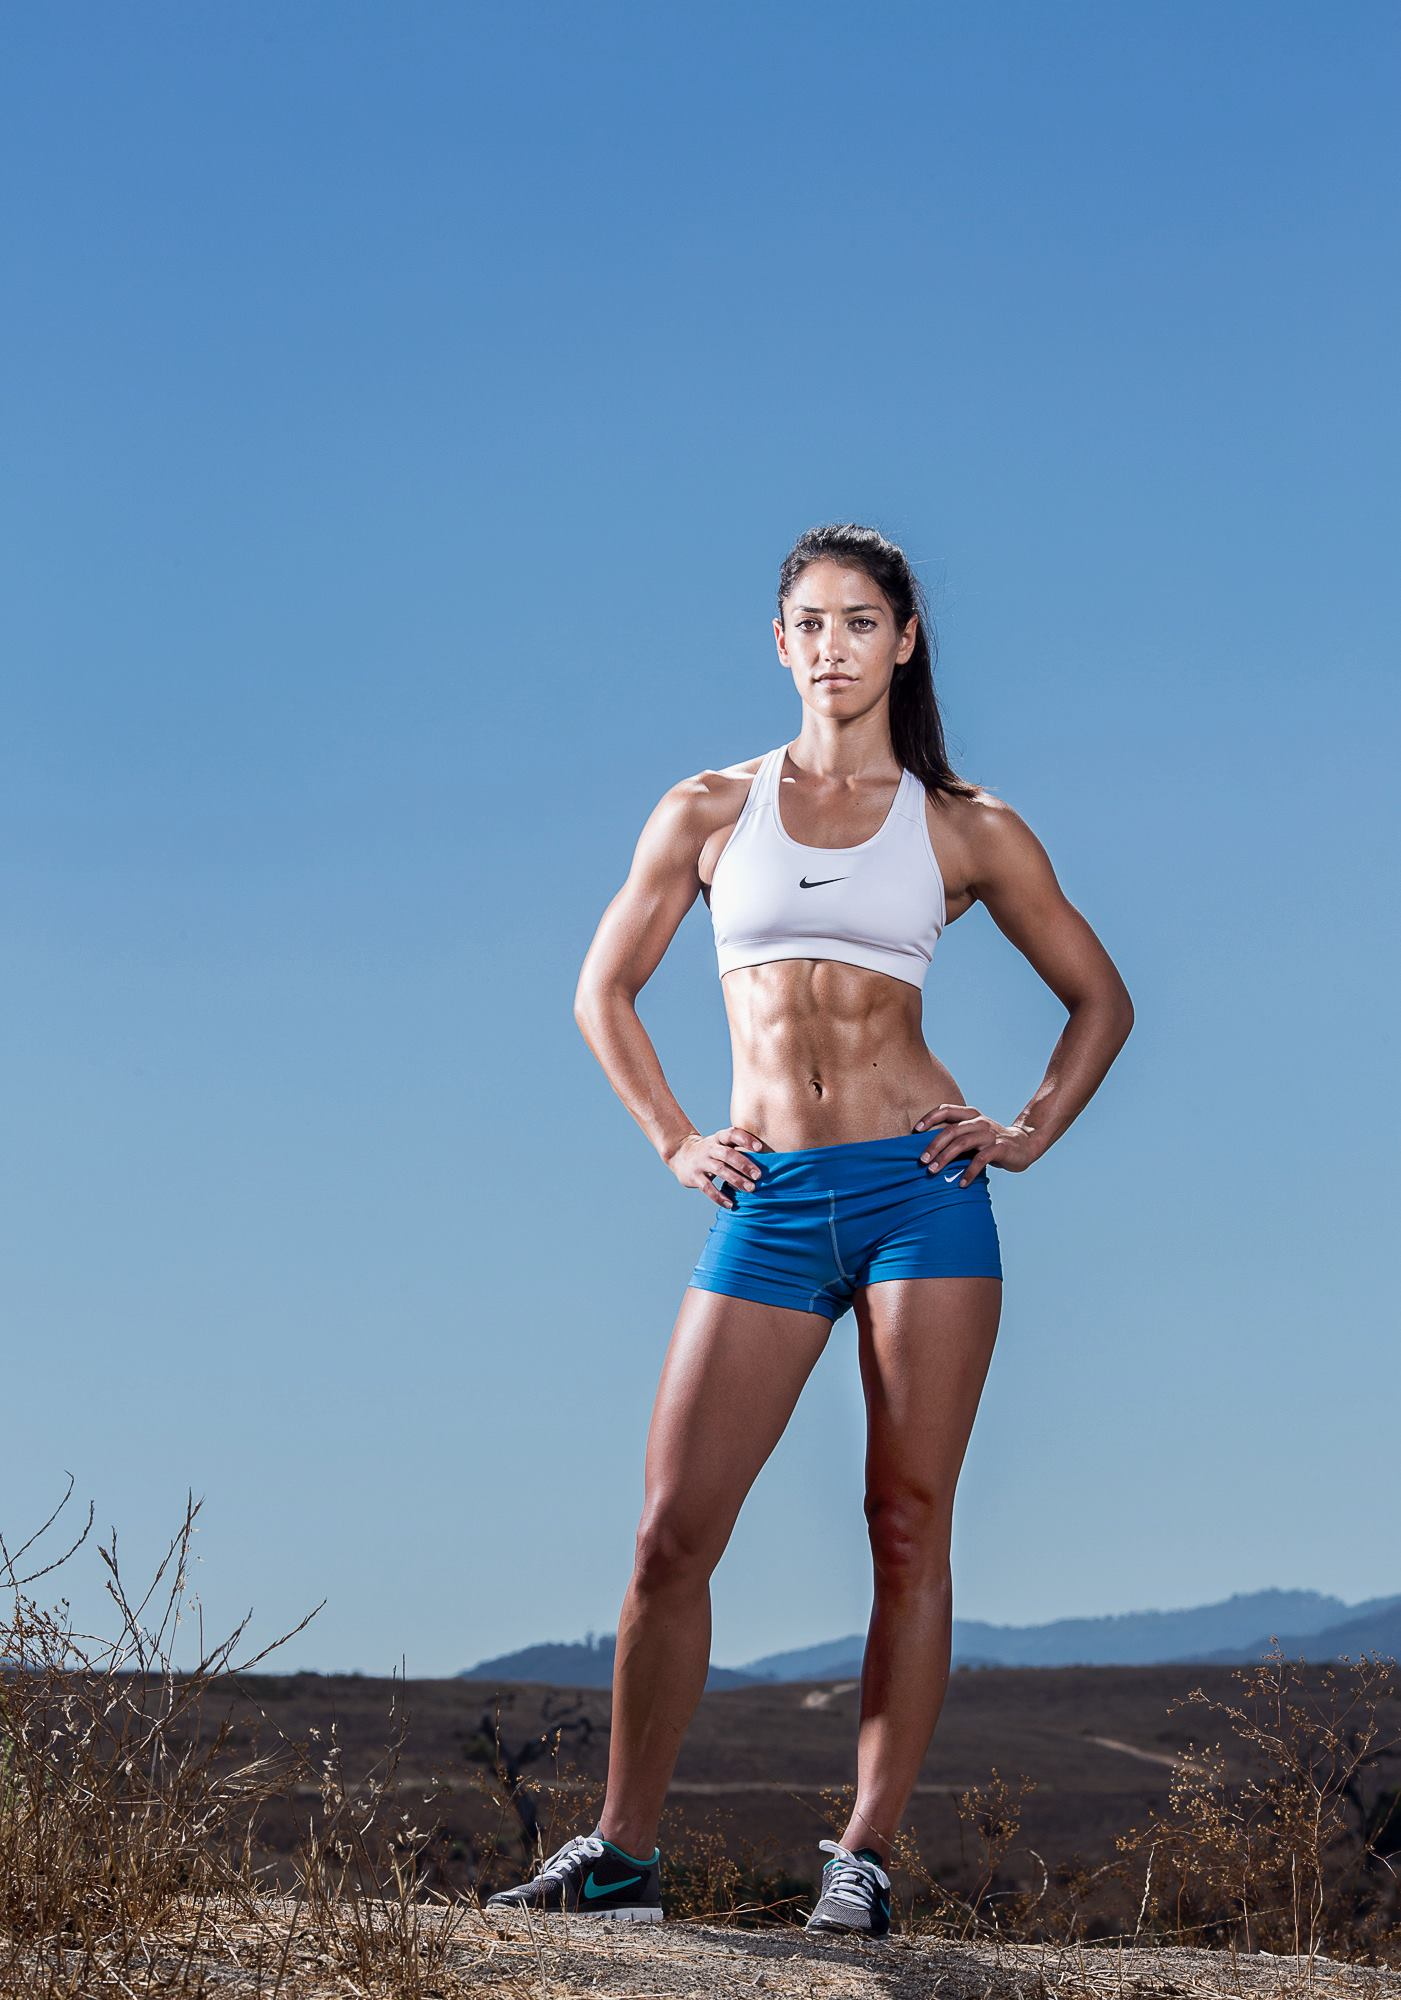 Two Roads With Allison Stokke By Go Pro